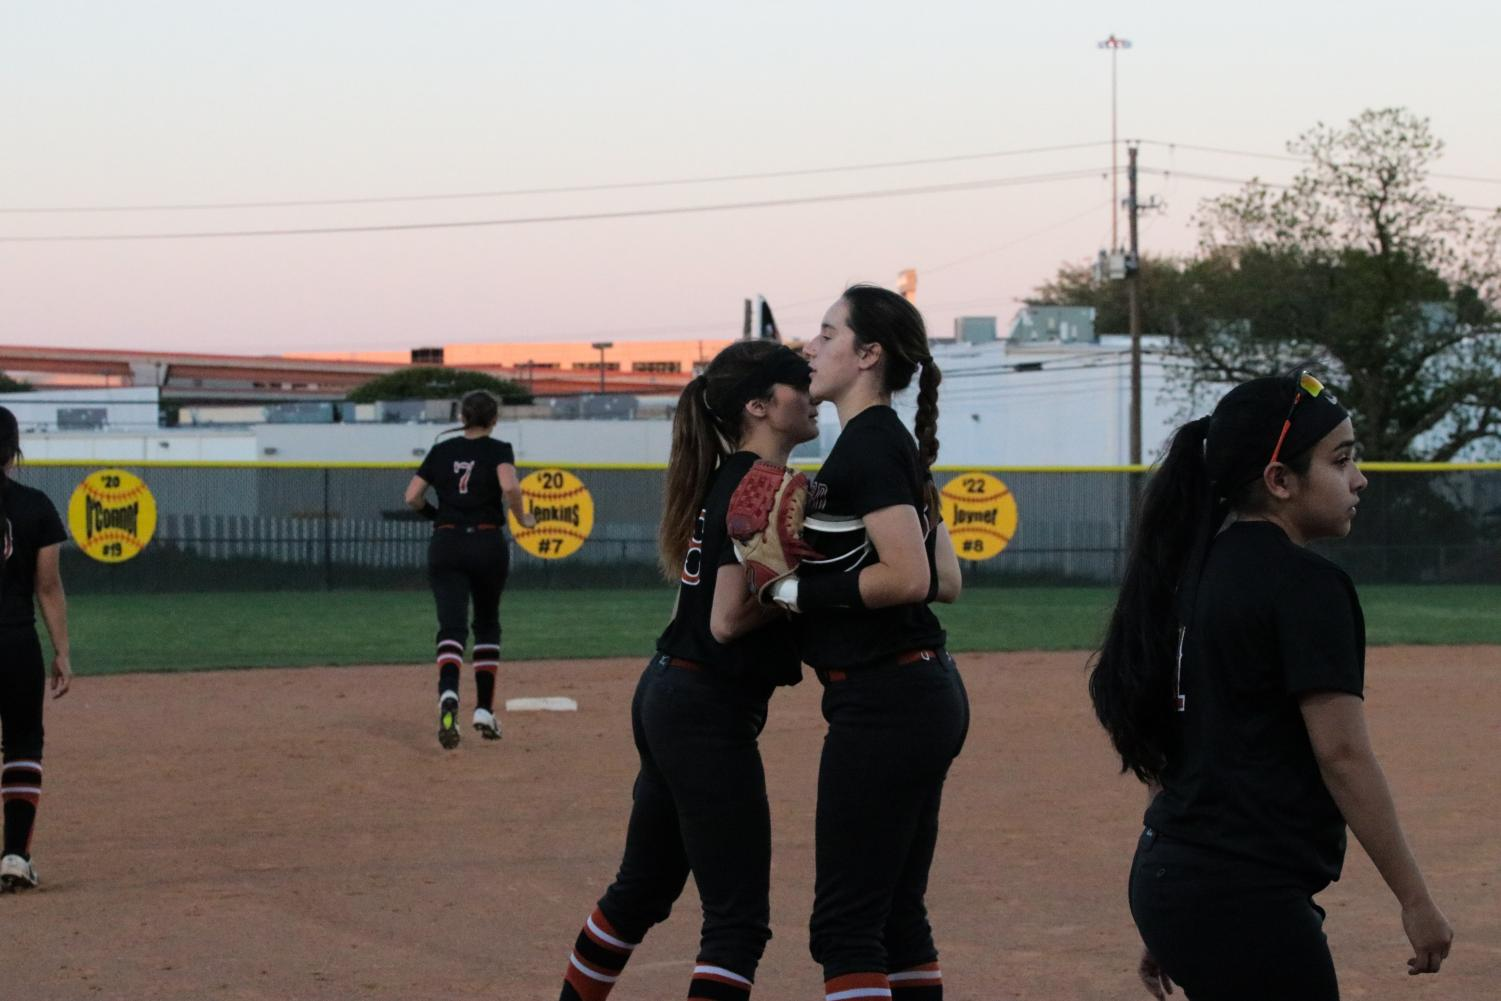 Chelsea+Terranova+%2720+and+Elizabeth+Joyner+%2722+do+their+handshake+before+the+inning.+